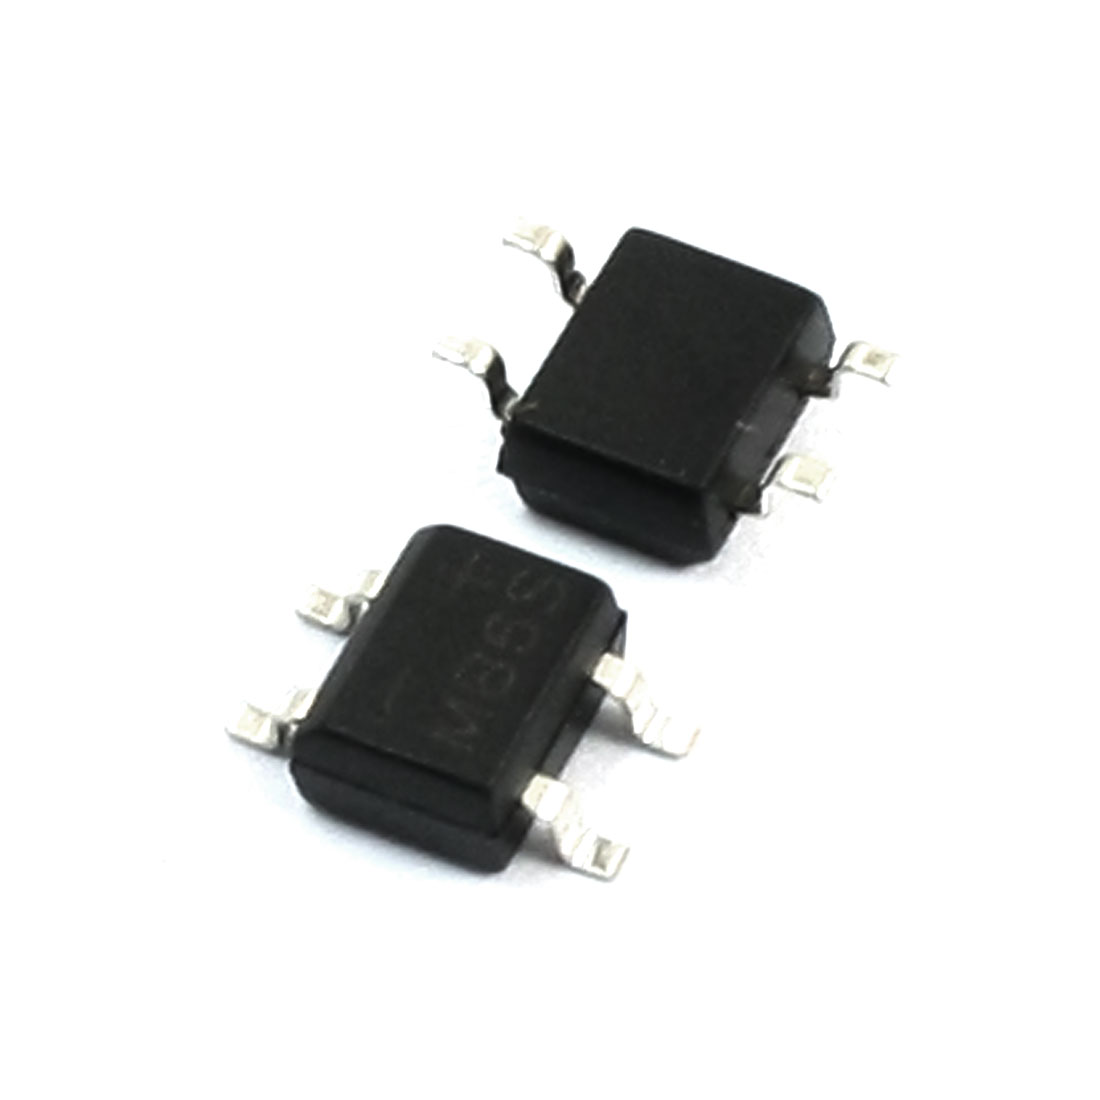 2Pcs MB6S Single Phase Diodes Bridge Rectifier 600V 0.5A